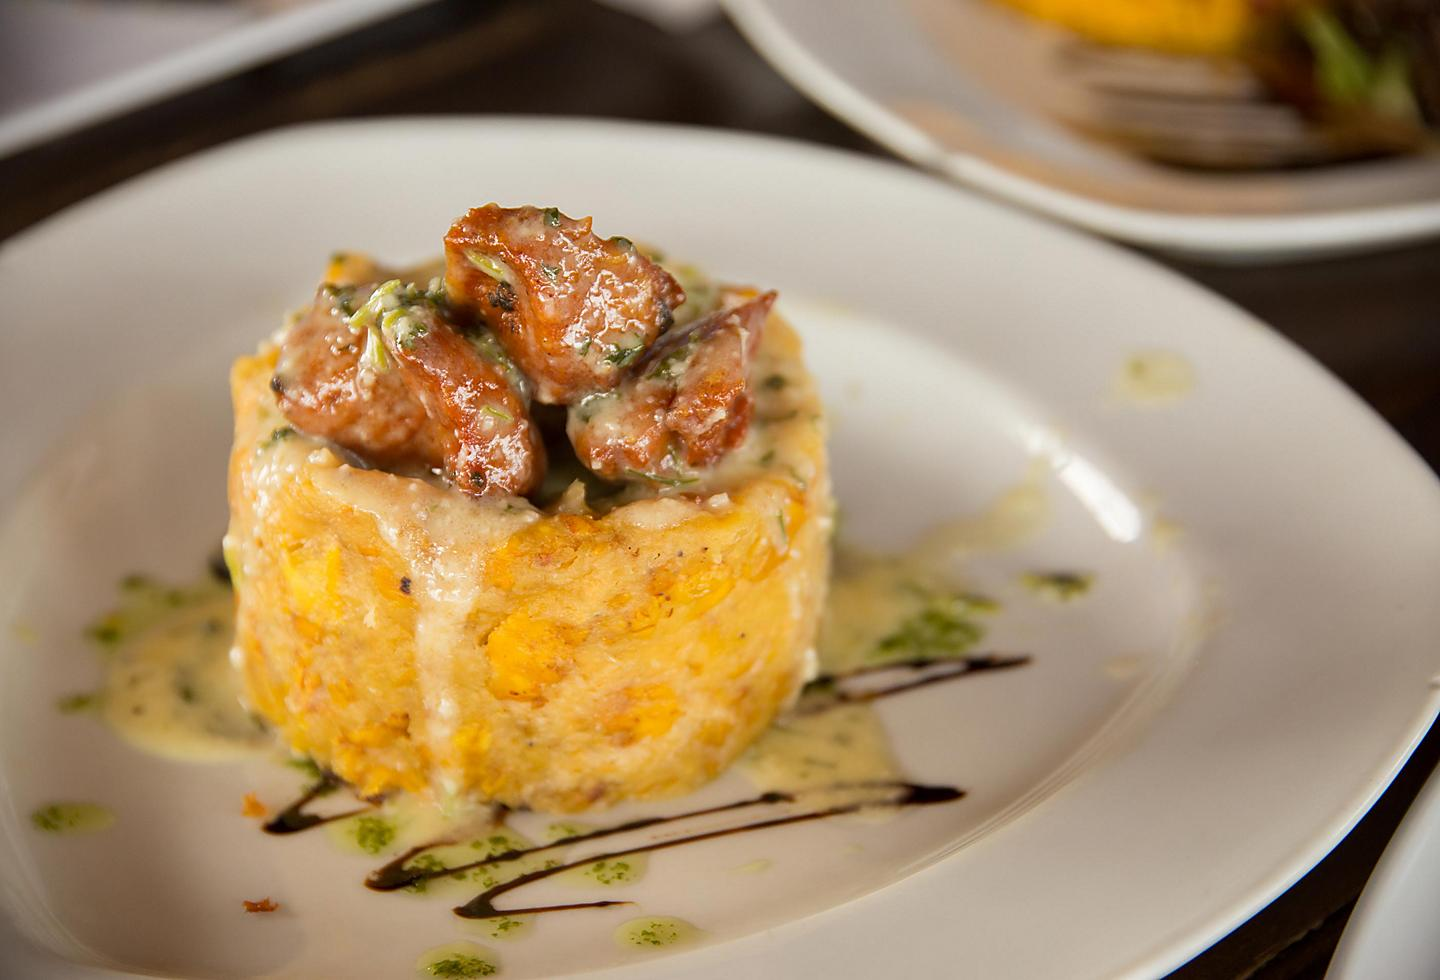 Succulent Mofongo with Fried Plantains